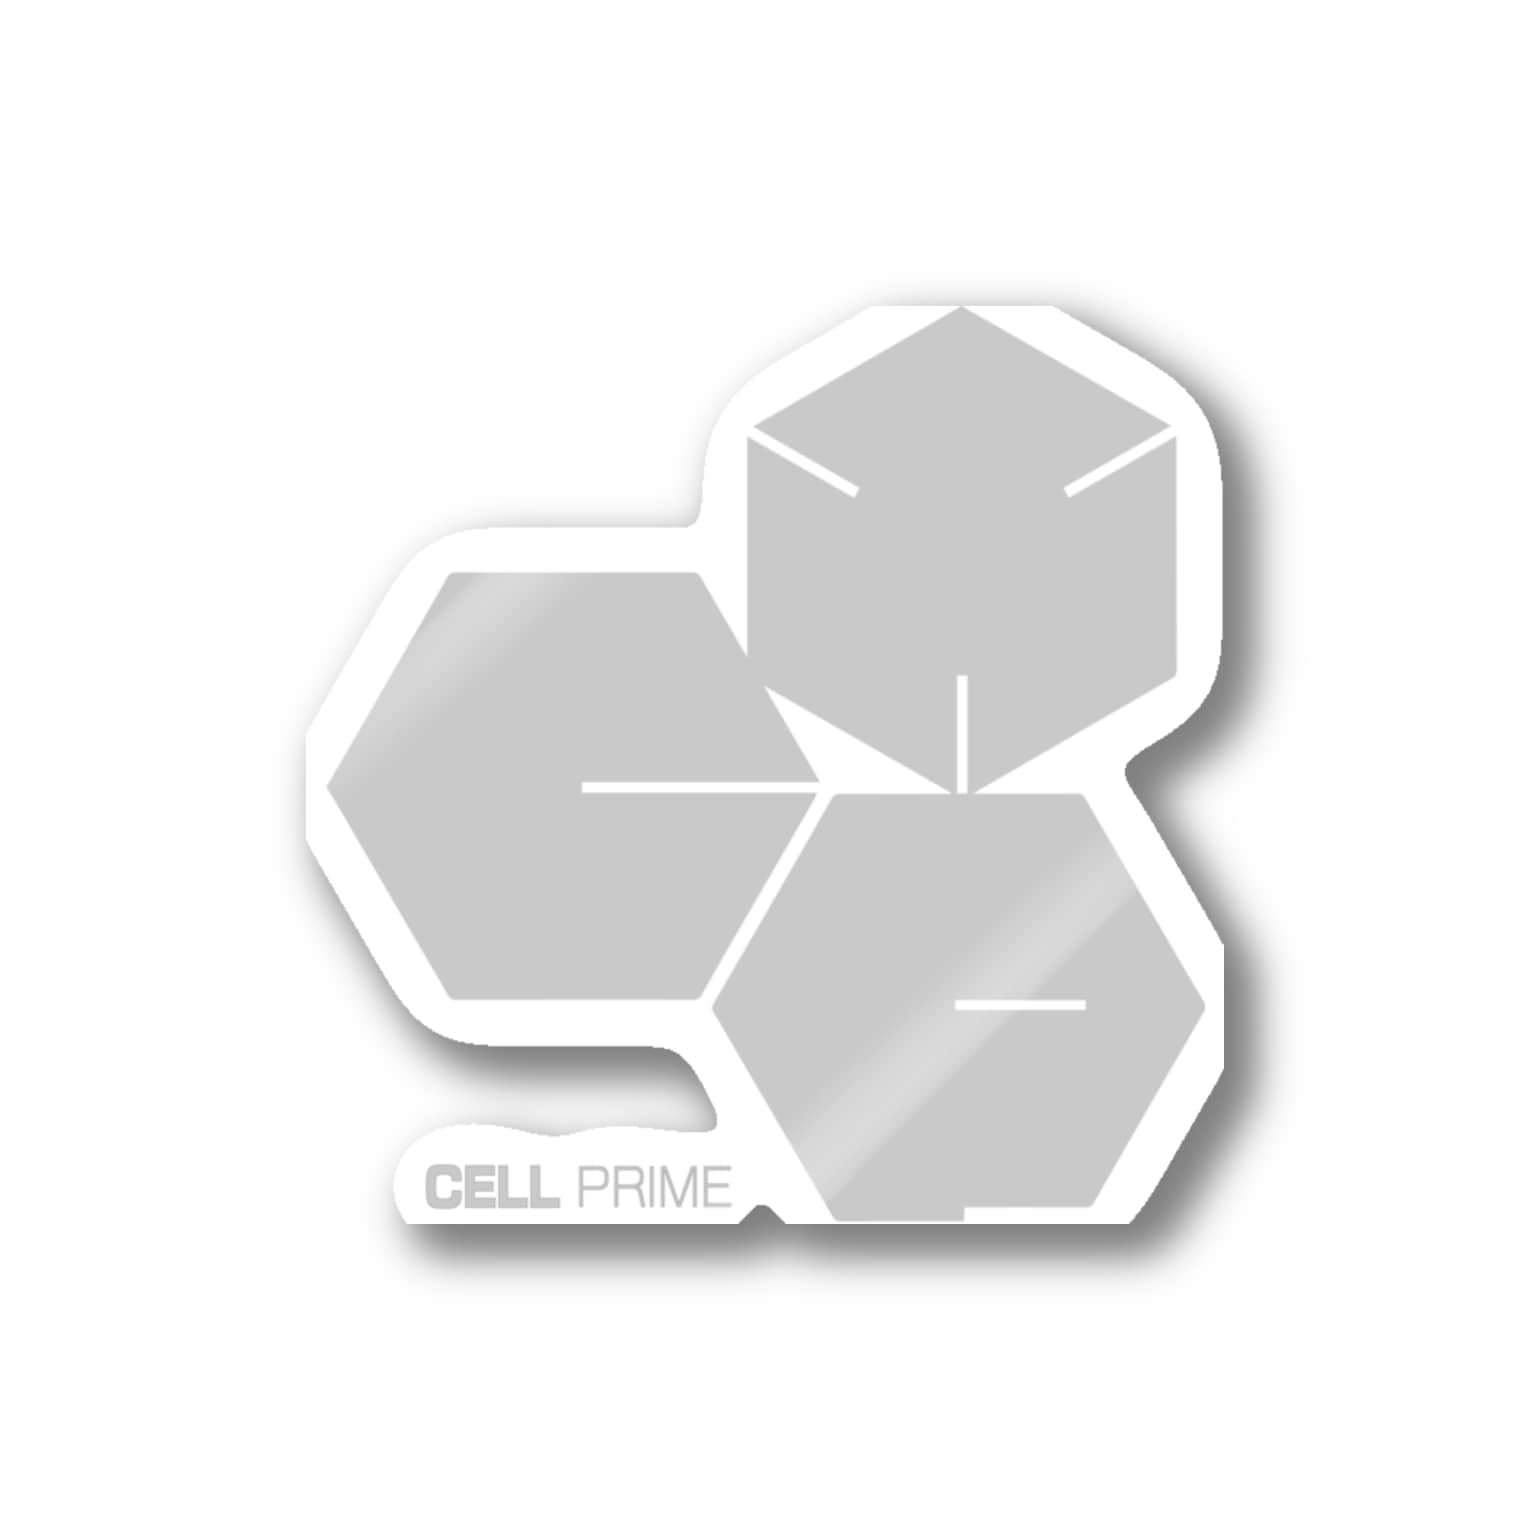 CELL PRIMEのCELLPRIME Stickers